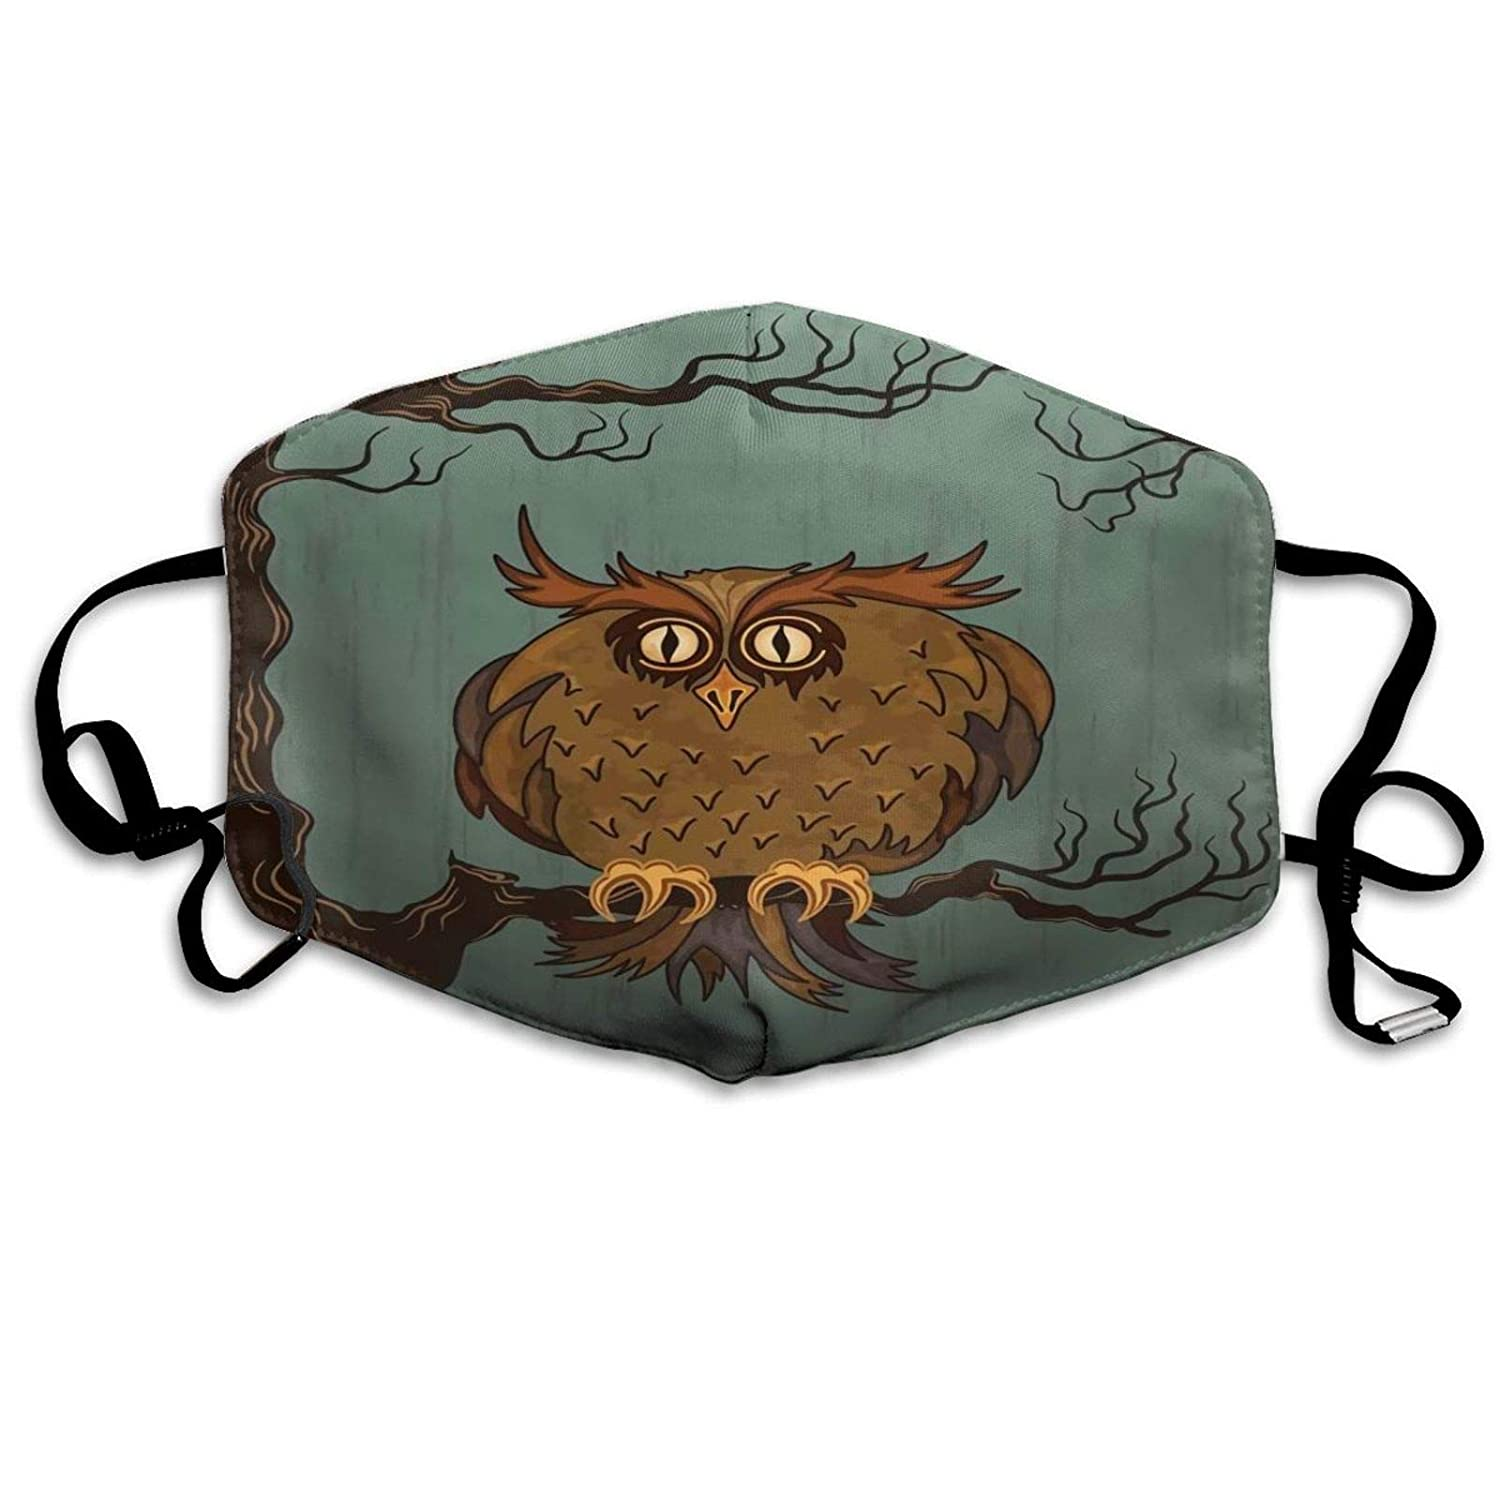 Comfortable Activated carbon mask,Exhausted Hangover Tired Owl in Oak Tree with Eyebrows Nature Cartoon Fun Artwork,Printed Facial decorations for adult